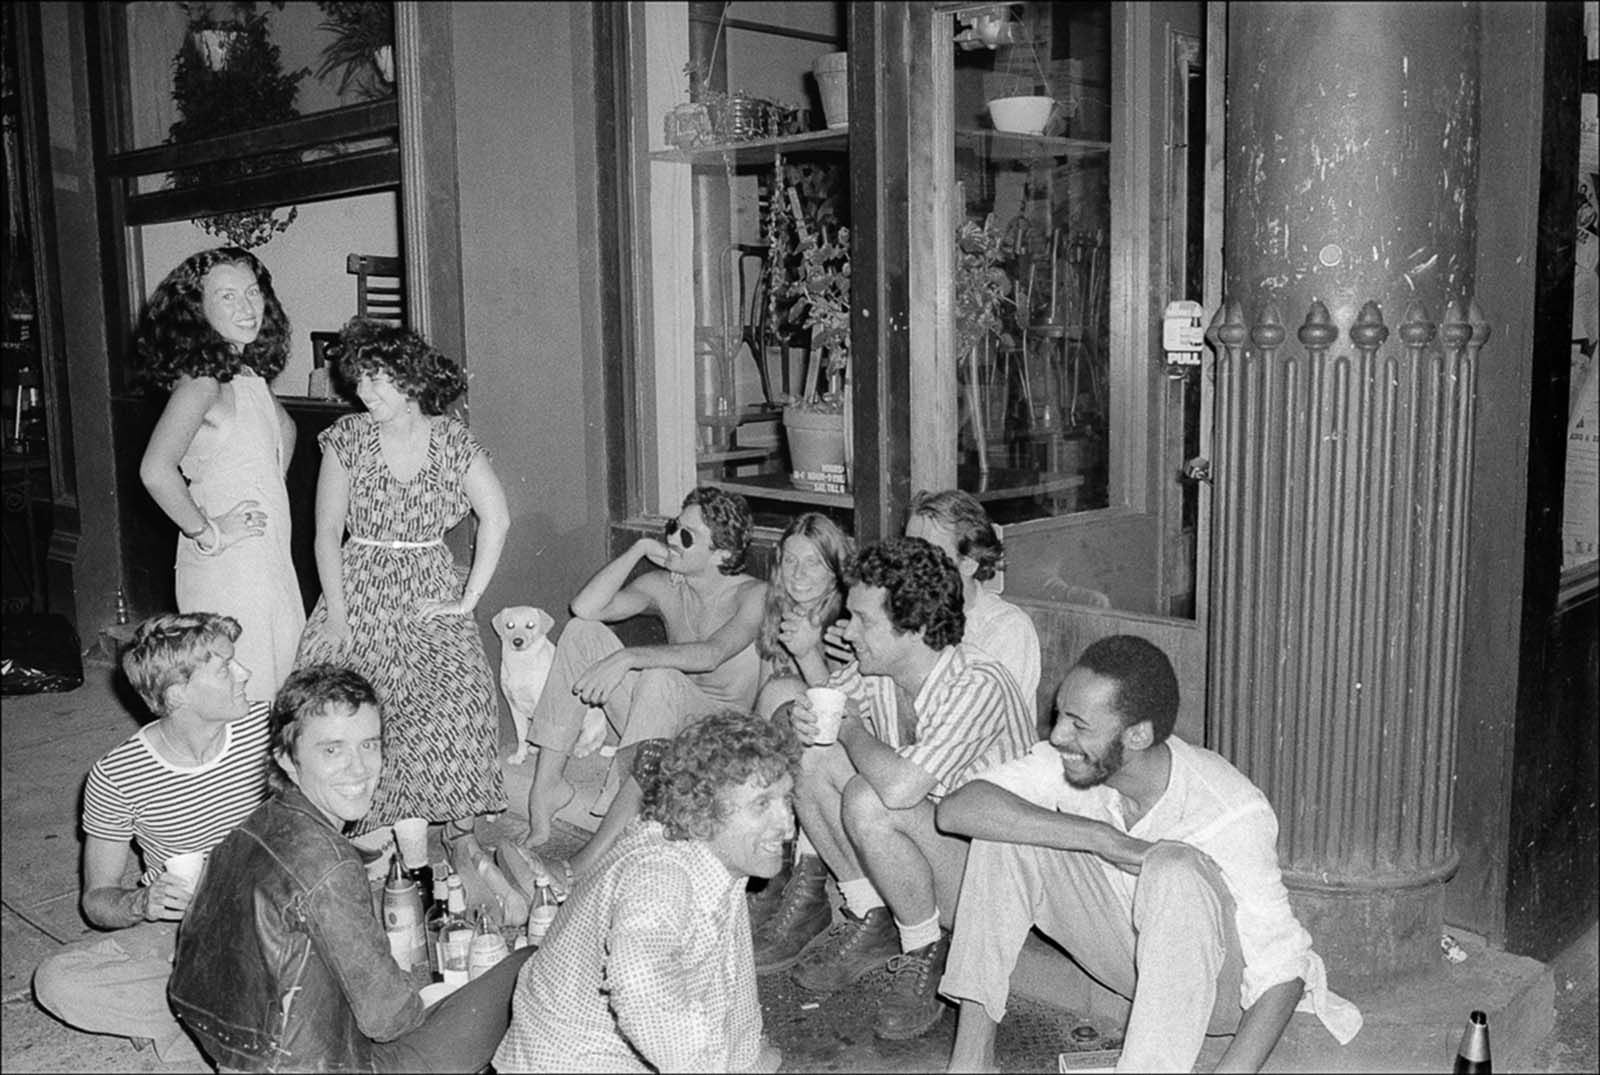 A group of people hold a party on a SoHo sidewalk.